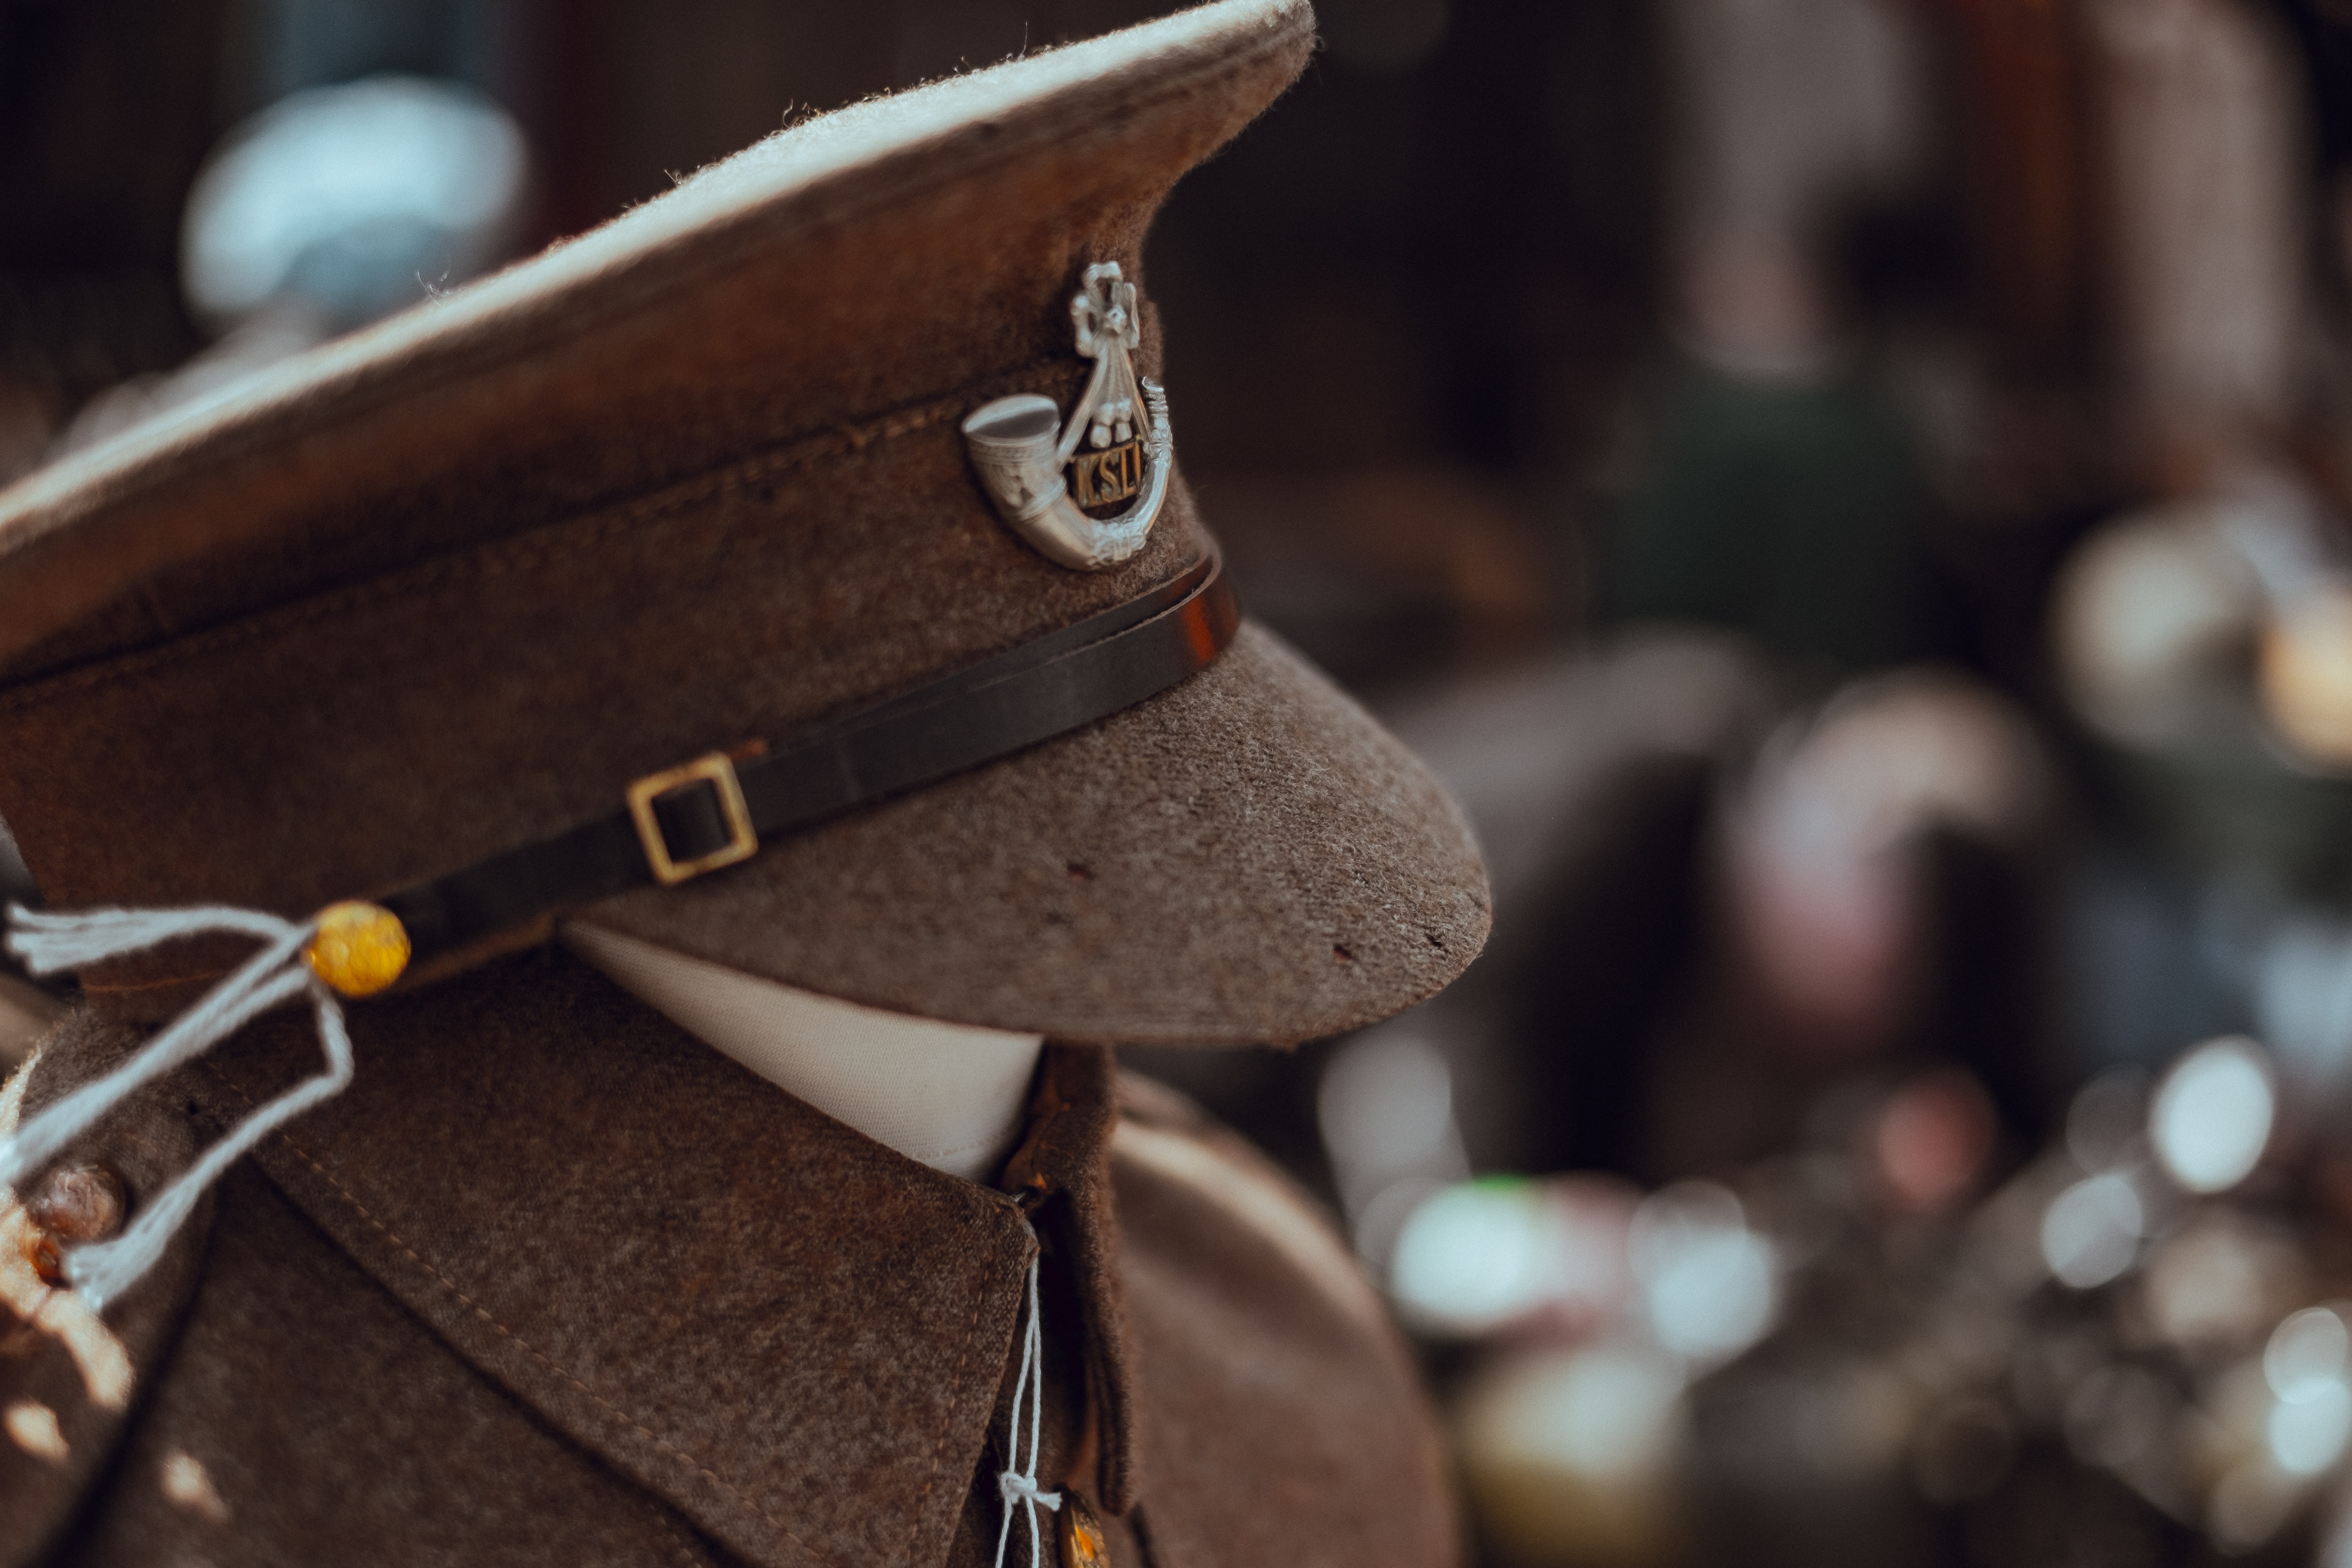 Macro of a ranking officer's hat on a manakin with a uniform